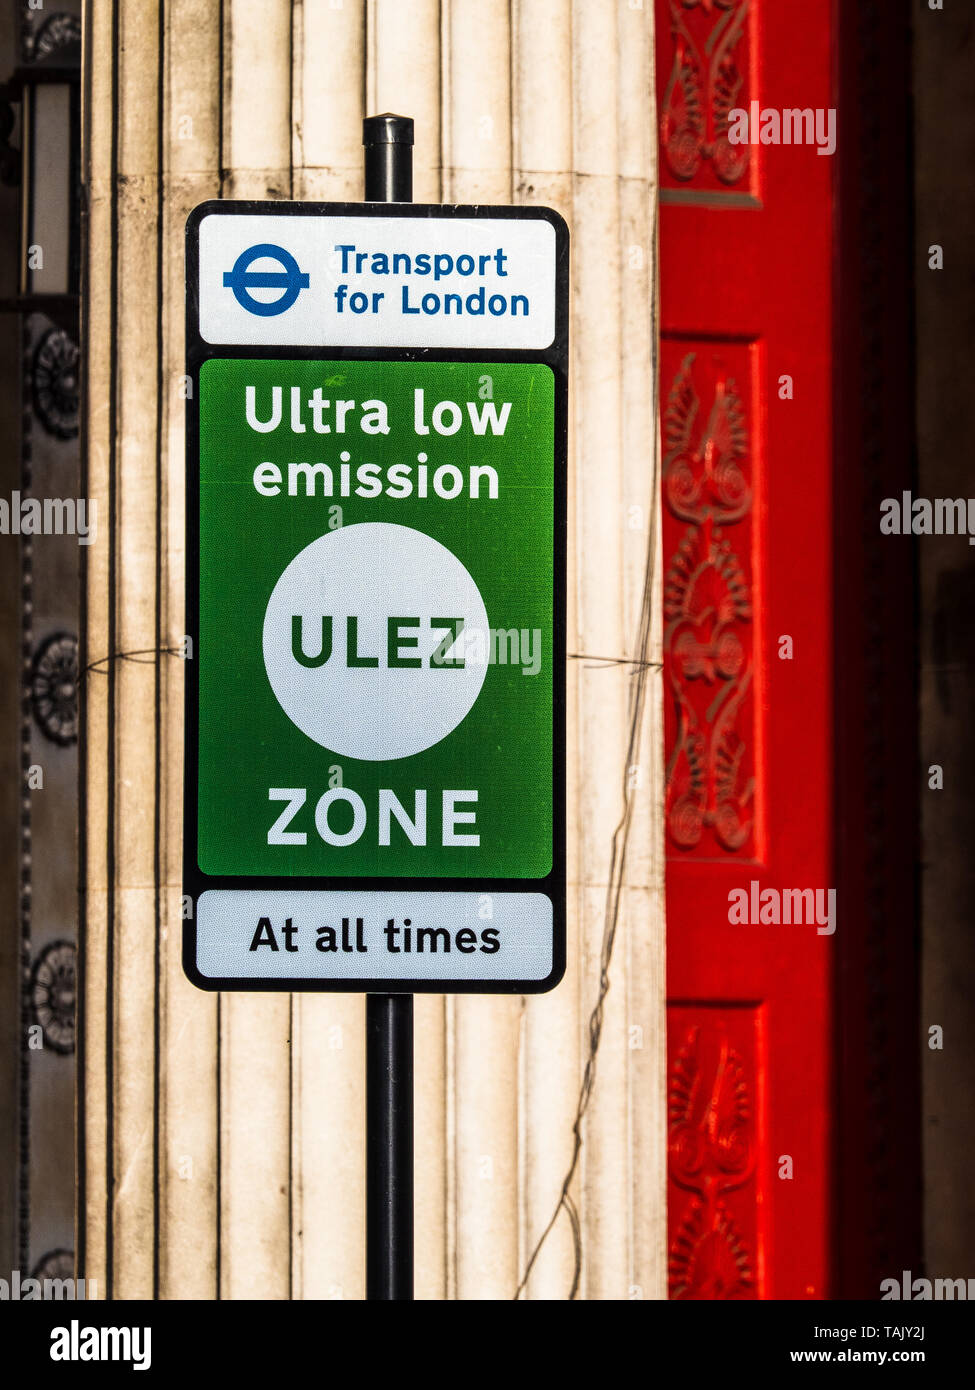 ULEZ Ultra Low Emission Zone Sign London - Signs for the new Ultra Low Emission Zone in central London implemented by Transport for London TFL in 2019 - Stock Image